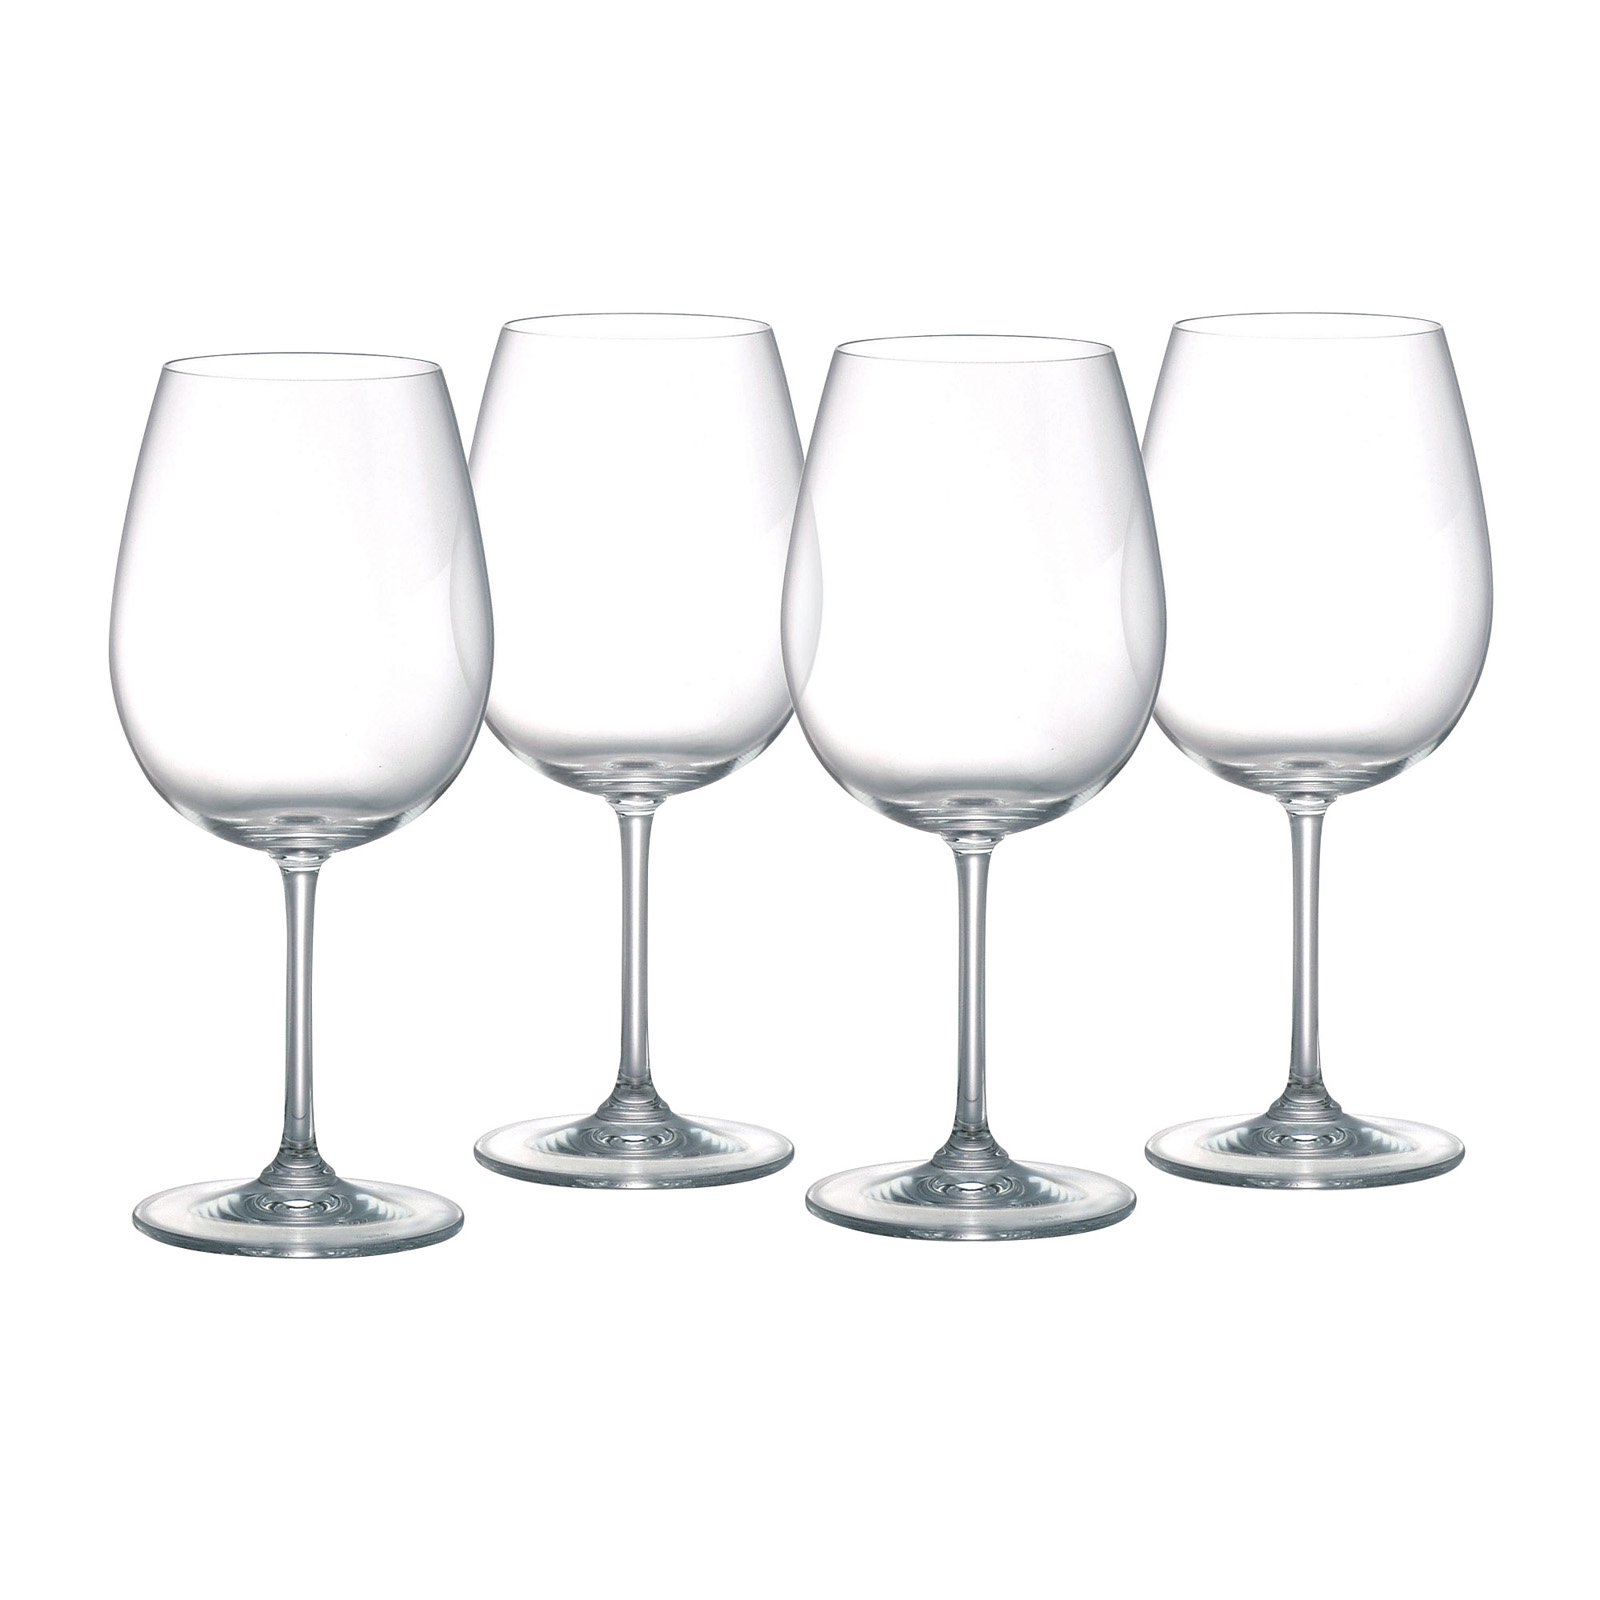 b45194d3727 Marquis by Waterford Vintage Full Body 19 oz. Red Wine Glass - Set ...